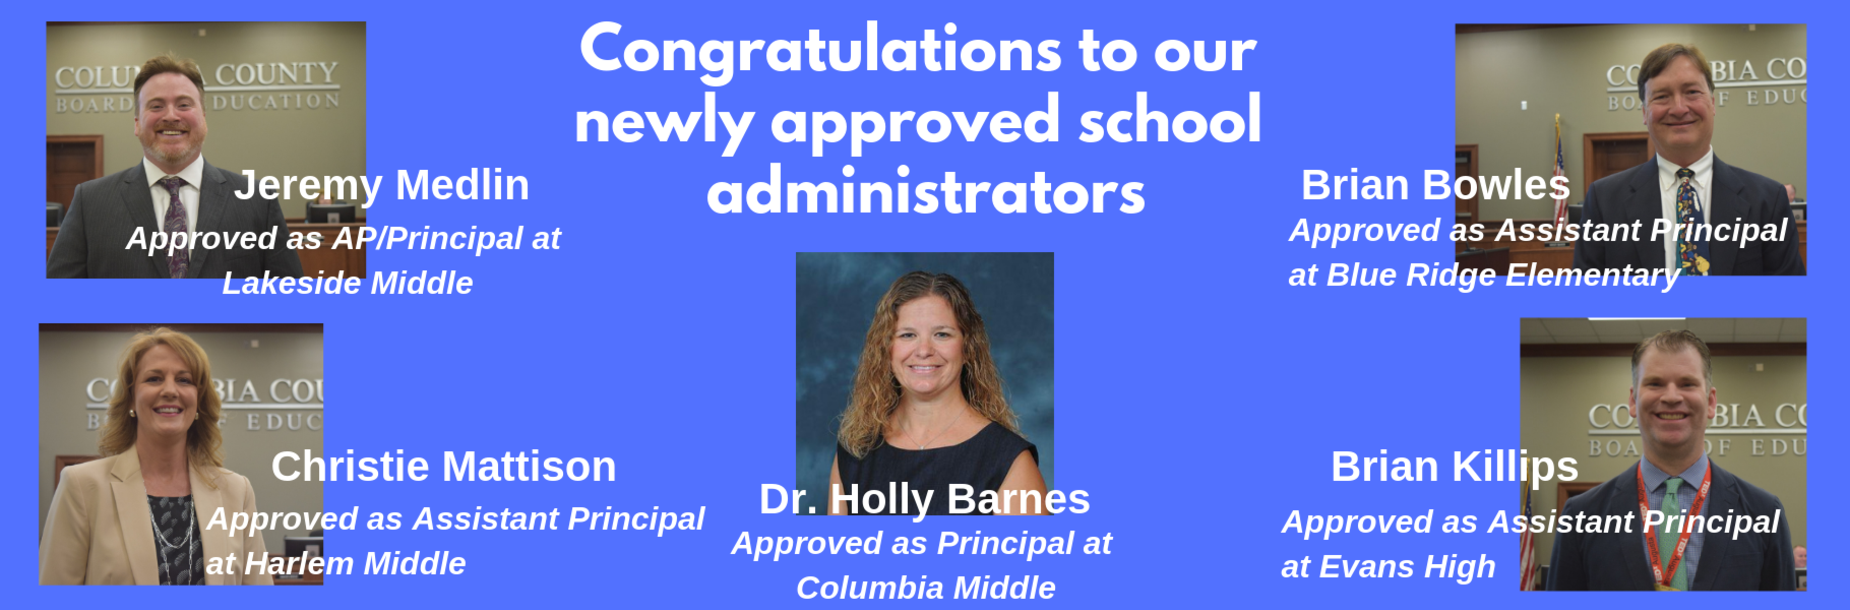 New administrators approved during a special called meeting